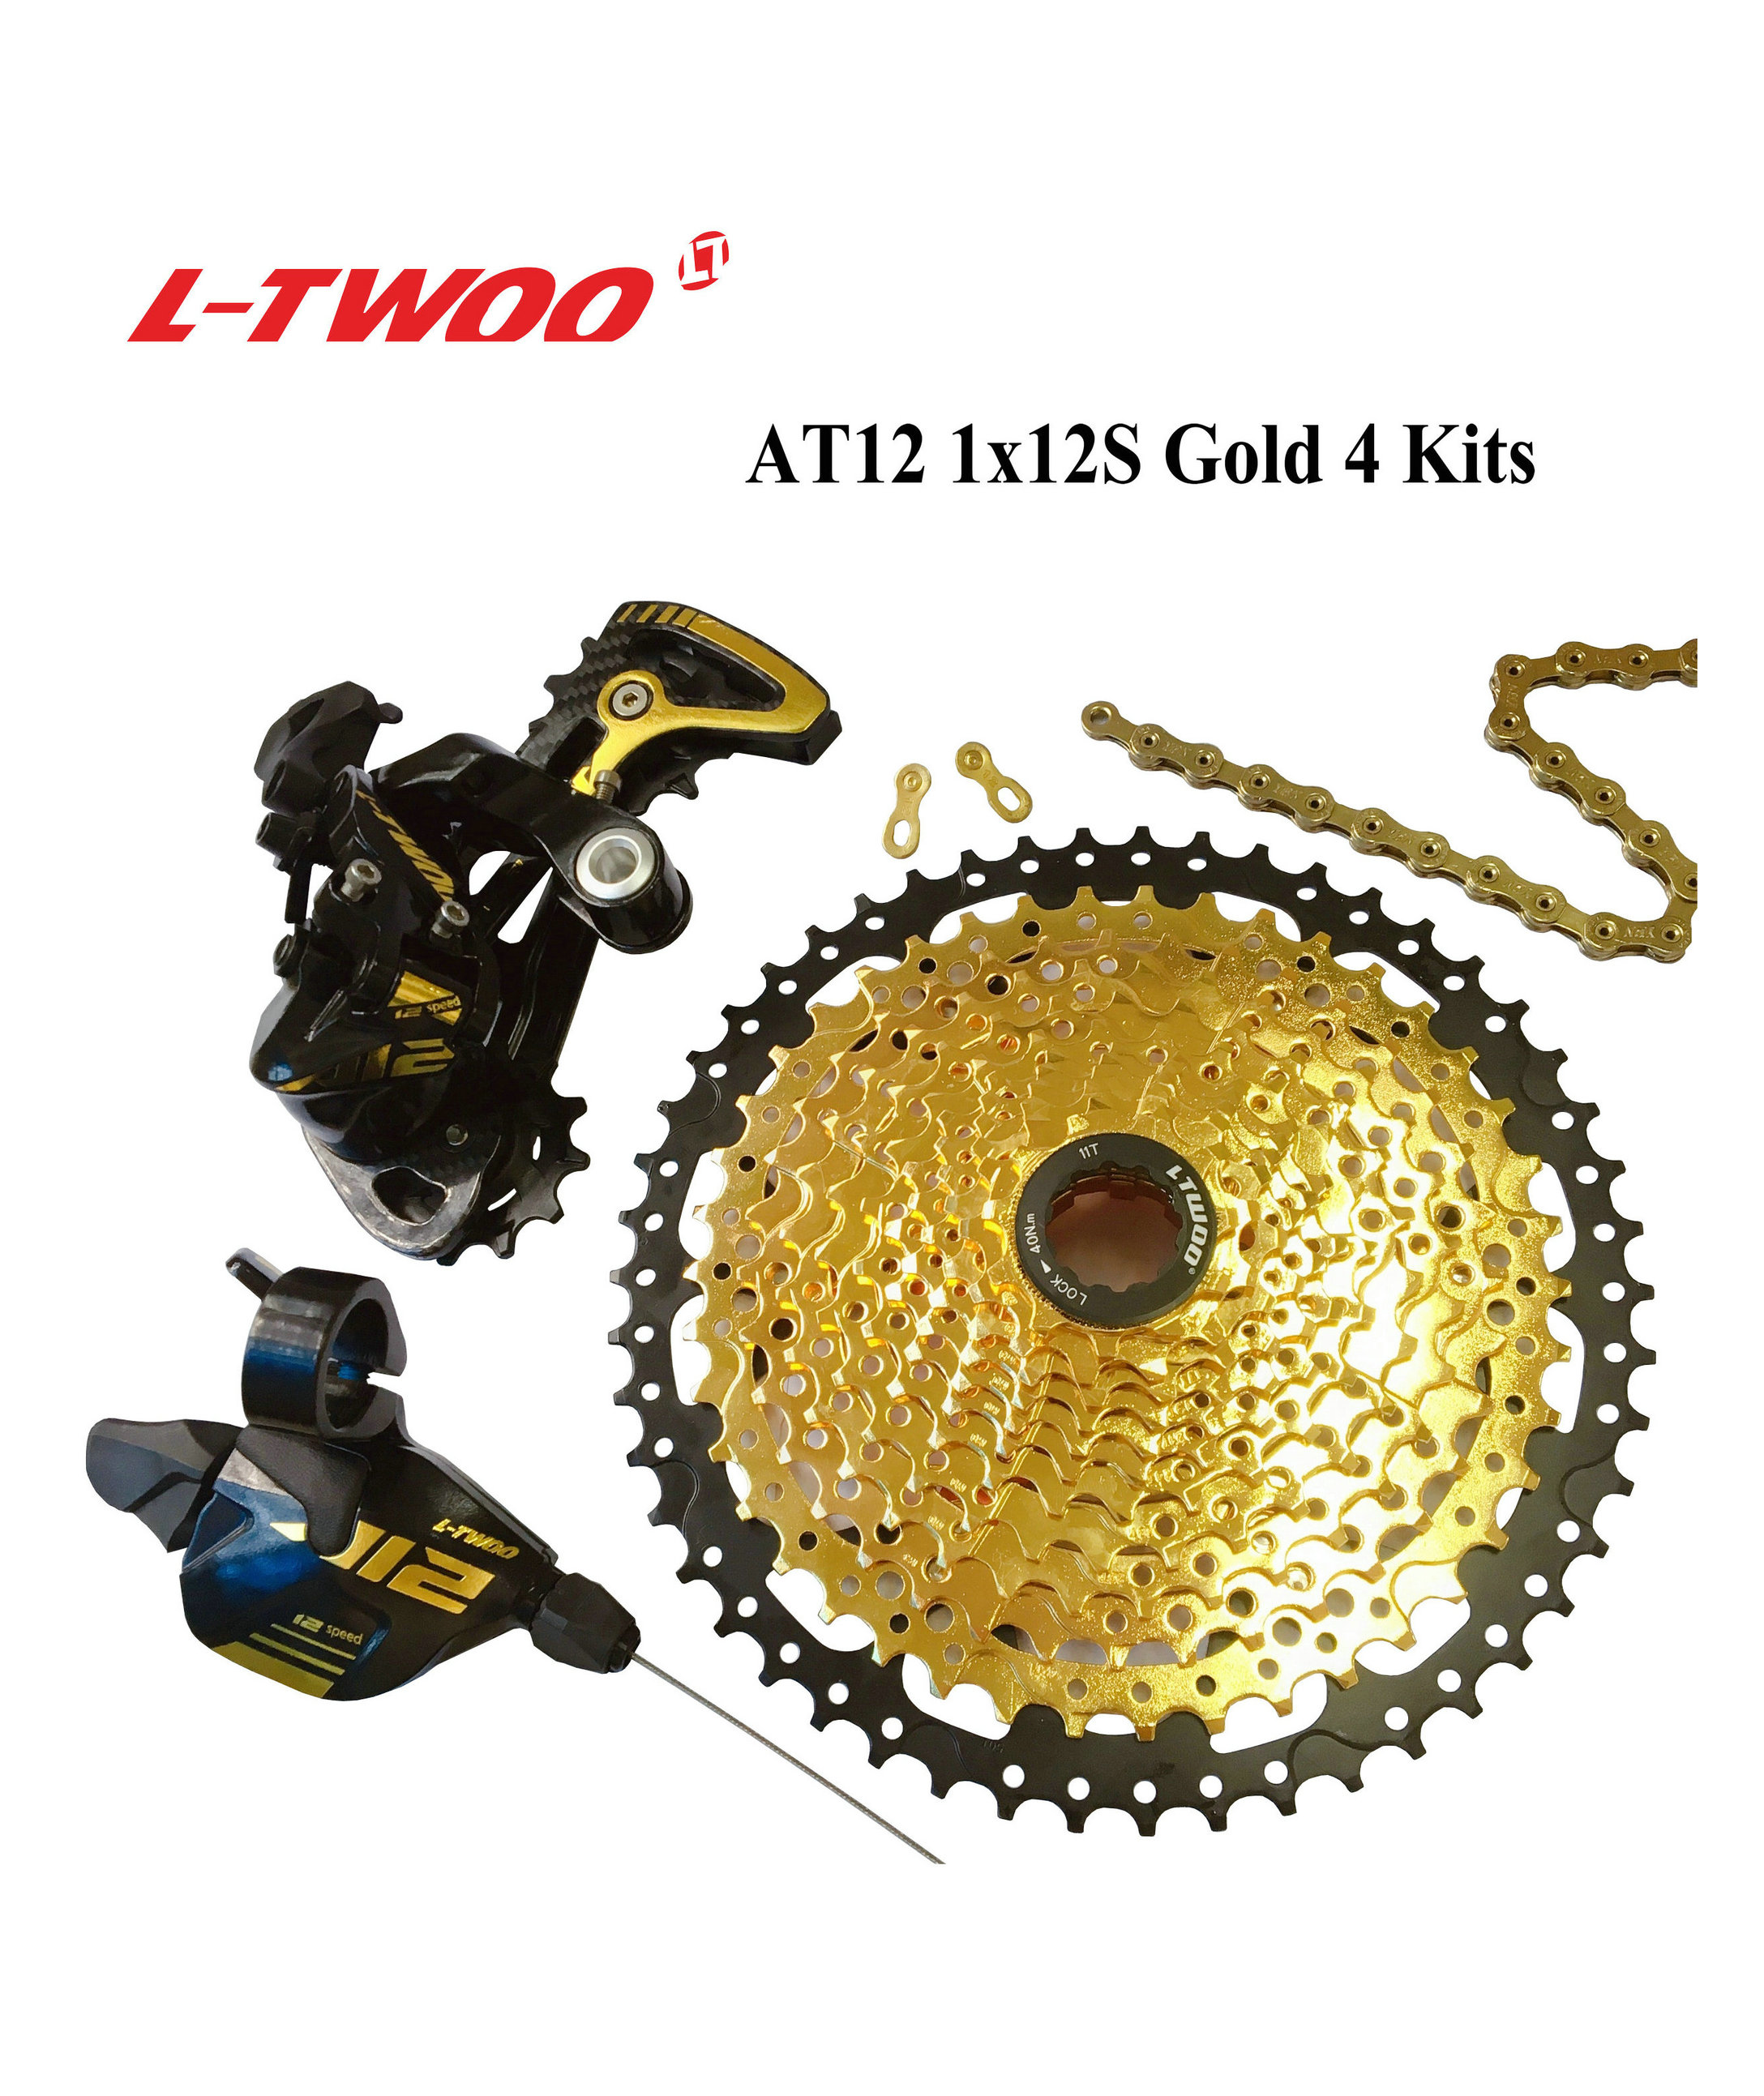 LTWOO Bicycle AT12 12 Speed Shifter lever Rear Derailleur 12s Cassette 50T Chain EAGLE GX M9100